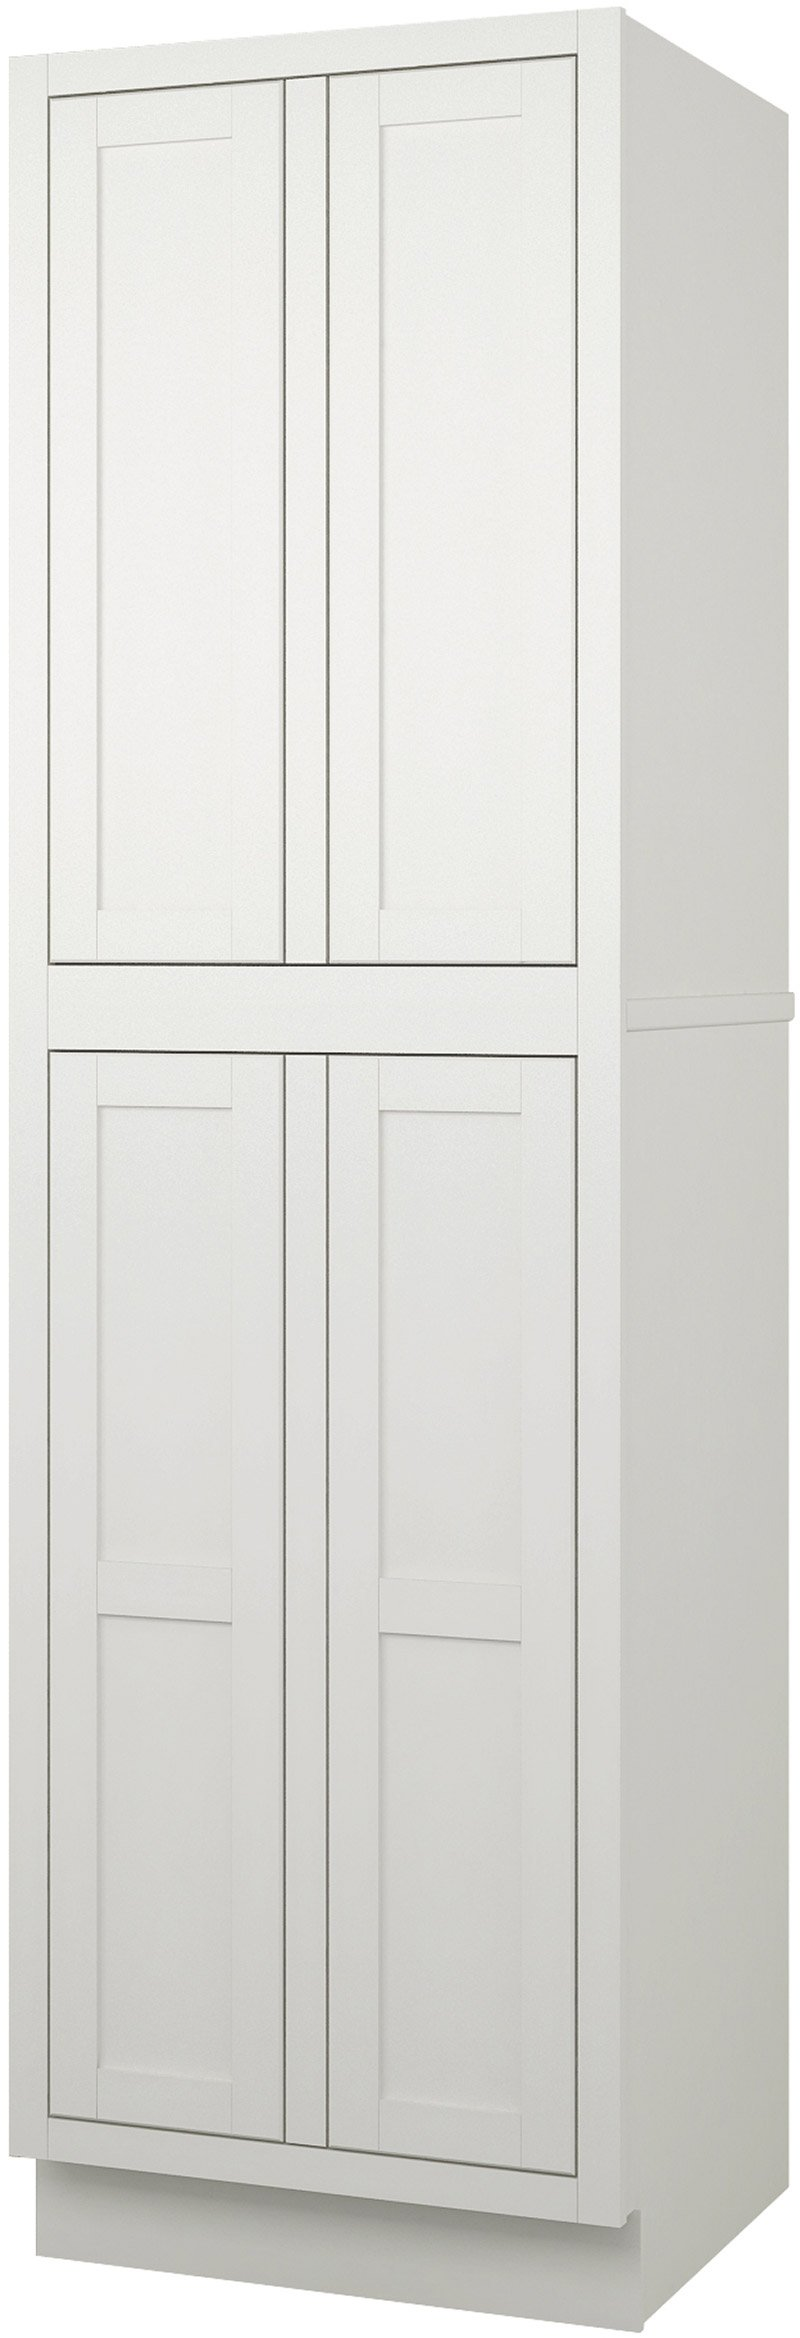 cabinet tall image unfinished pantry white kitchen ideas literarywondrous lowes